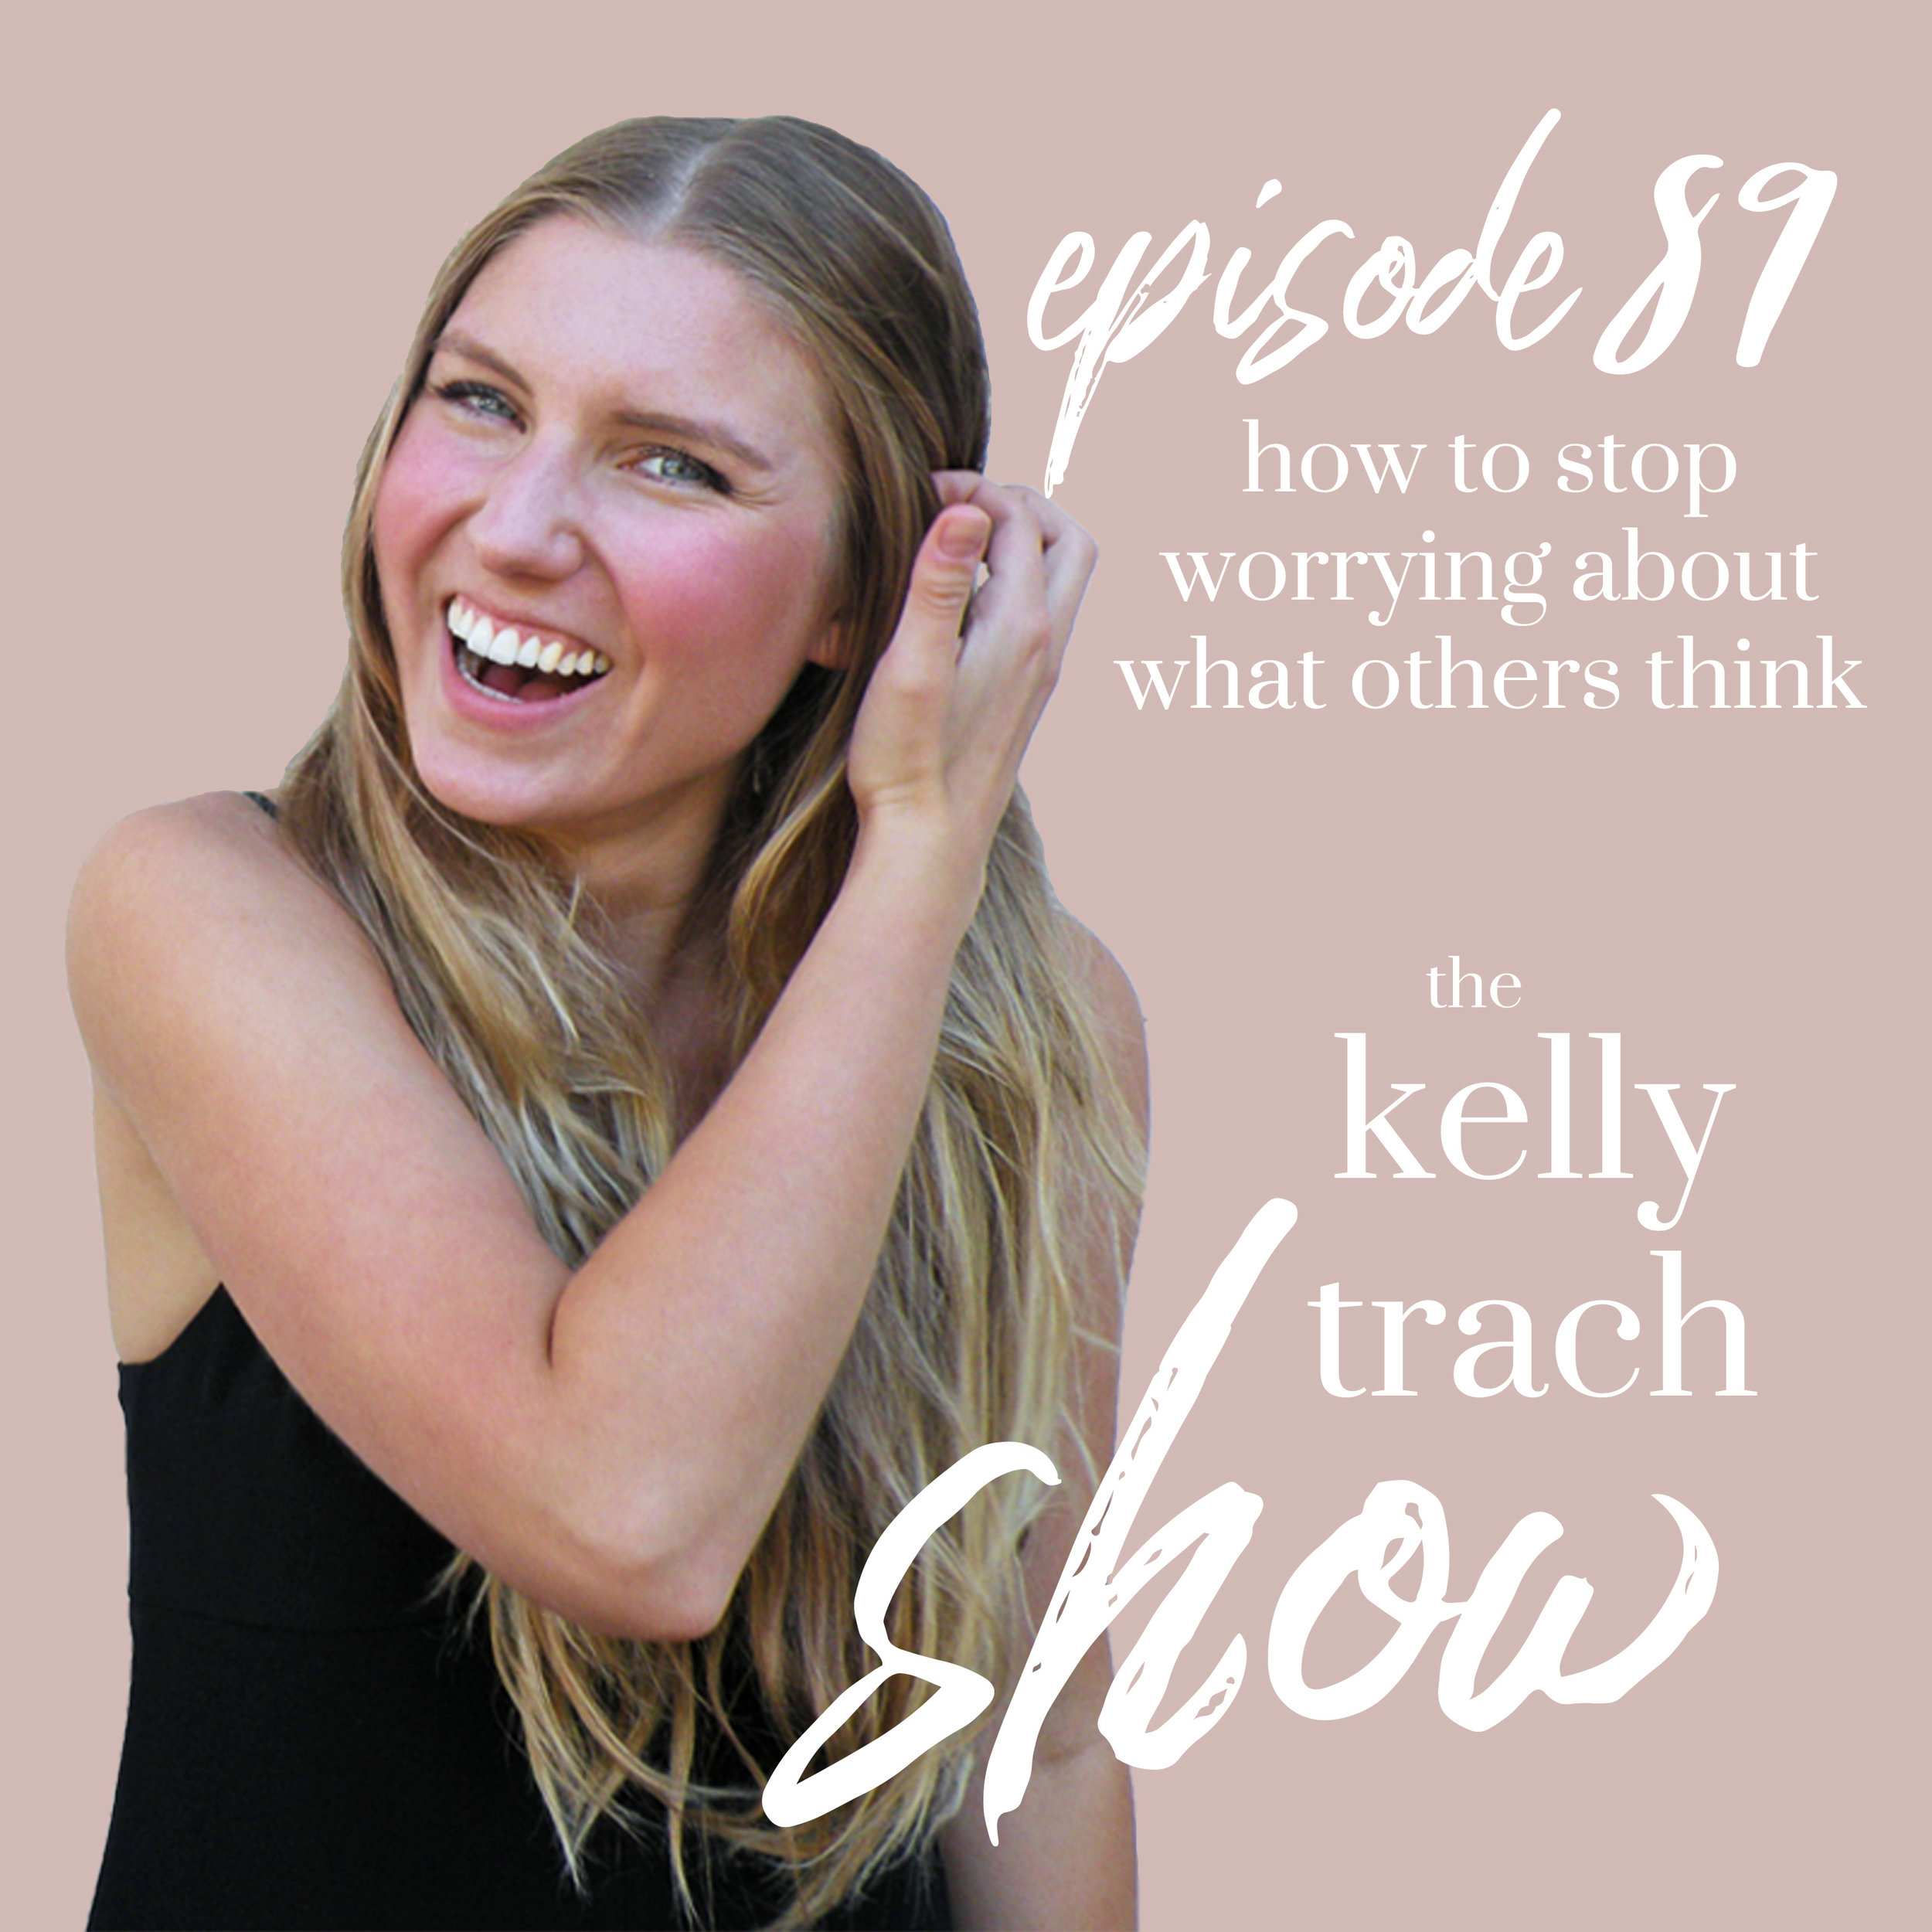 89 - How to Stop Worrying About What Others Think - The Kelly Trach Show Podcast.jpg